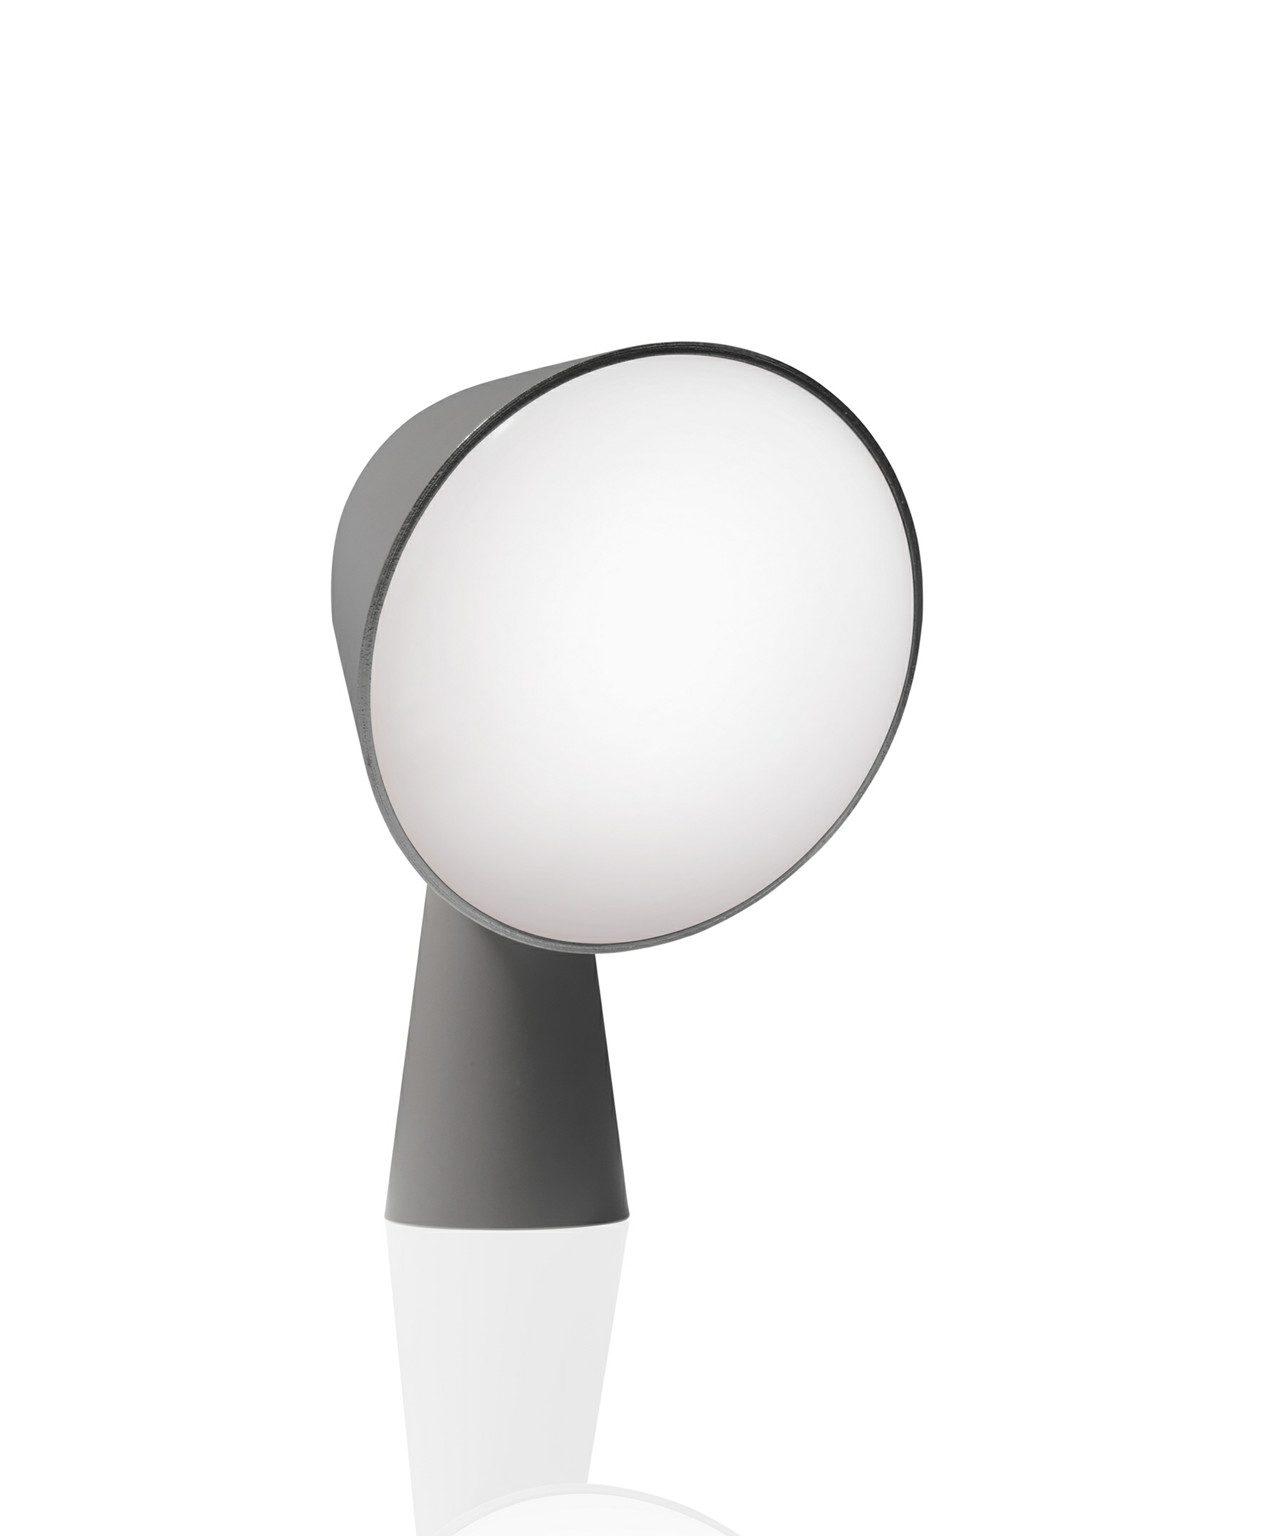 Image of   Binic Bordlampe Antracit - Foscarini